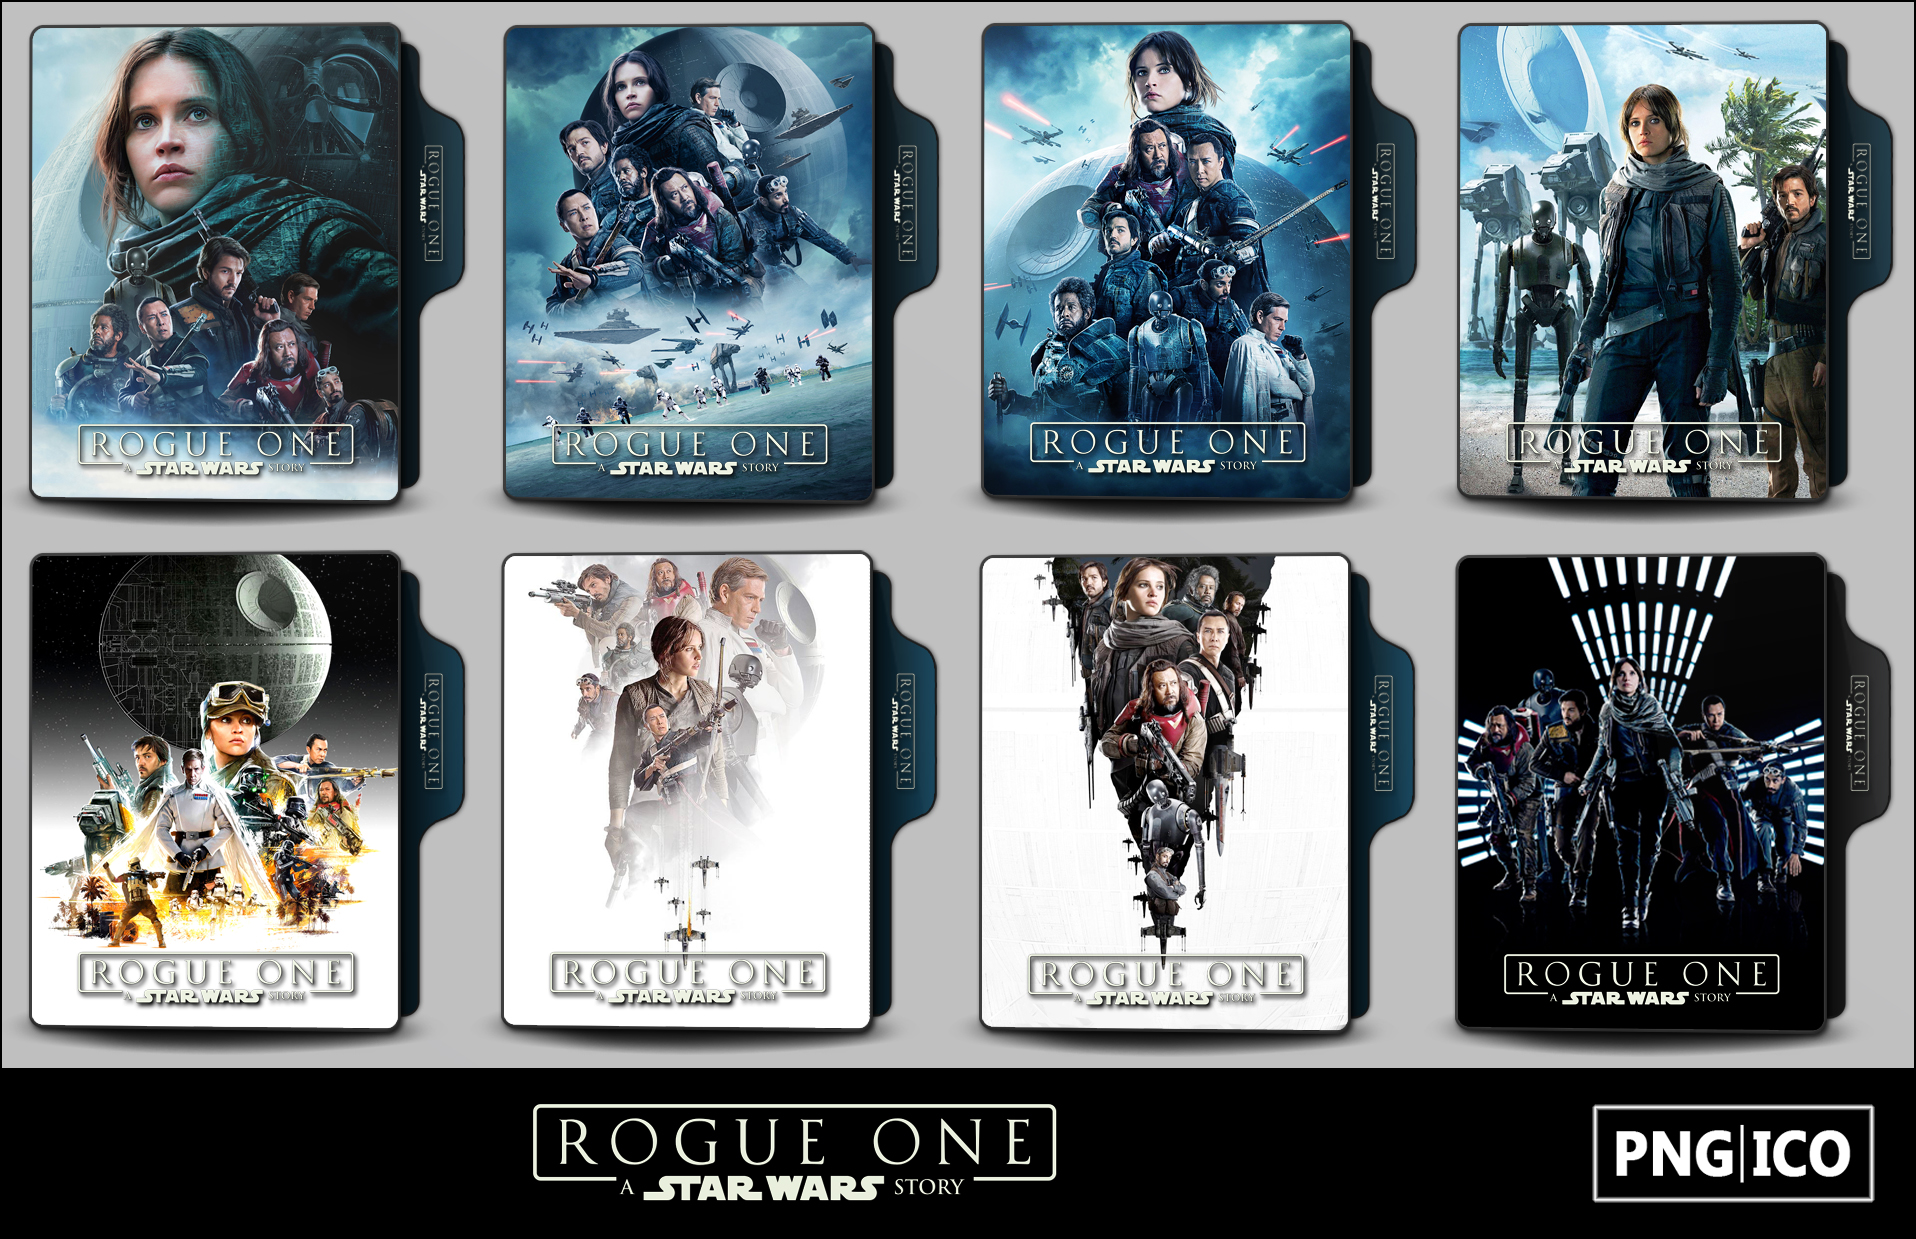 Rogue One A Star Wars Story 2016 Folder Icons By Onlystylematters On Deviantart